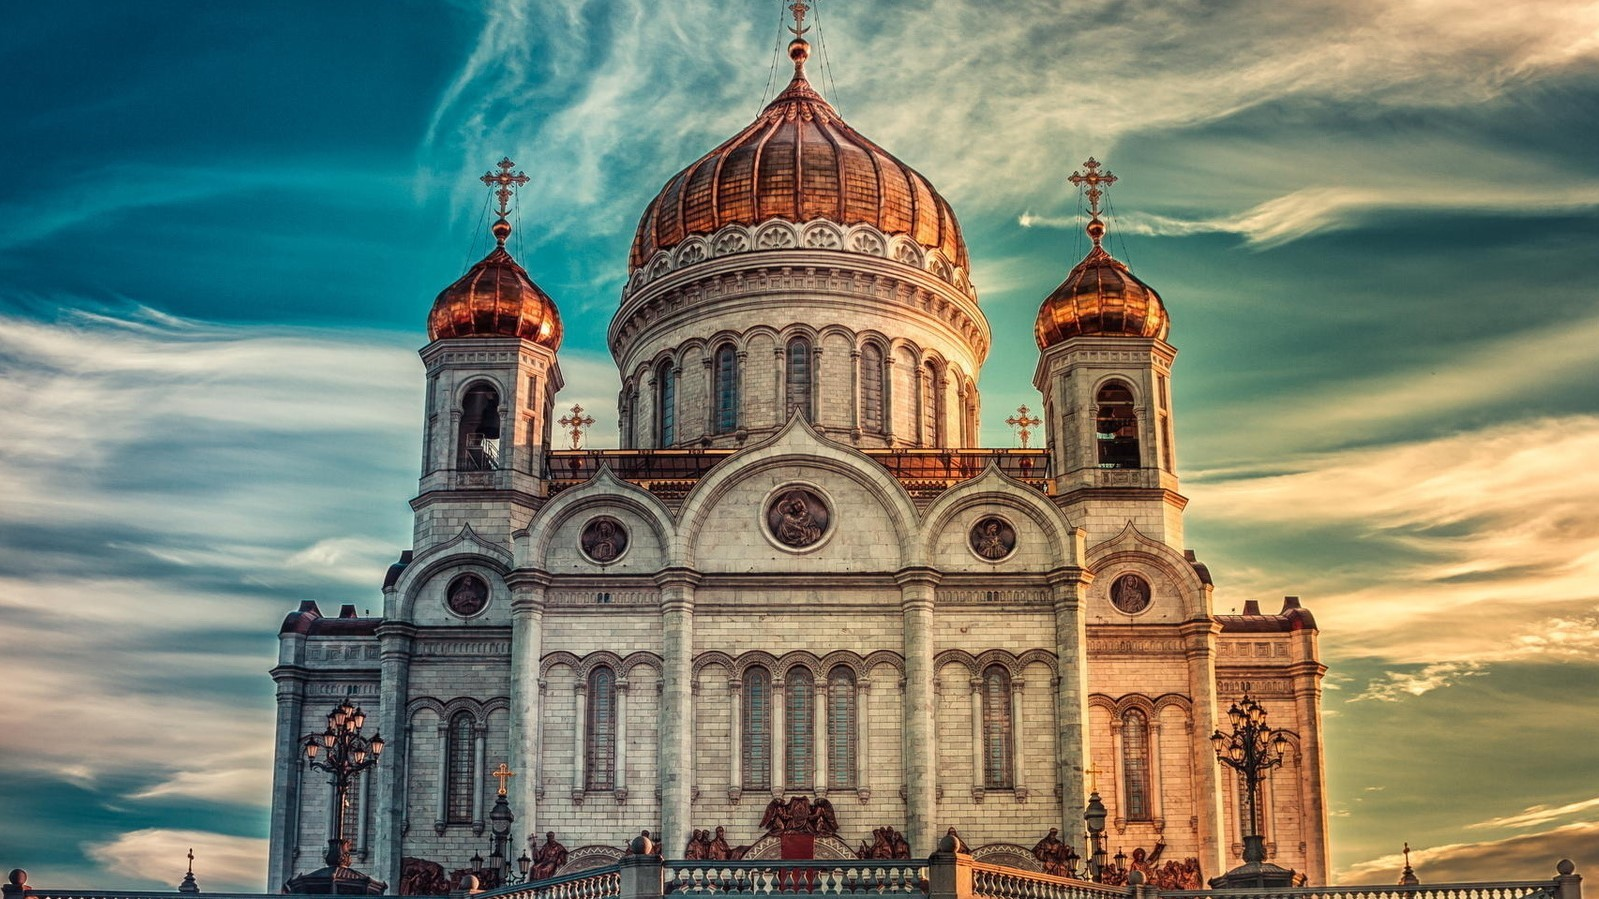 Moscow, the Cathedral of Christ the Savior